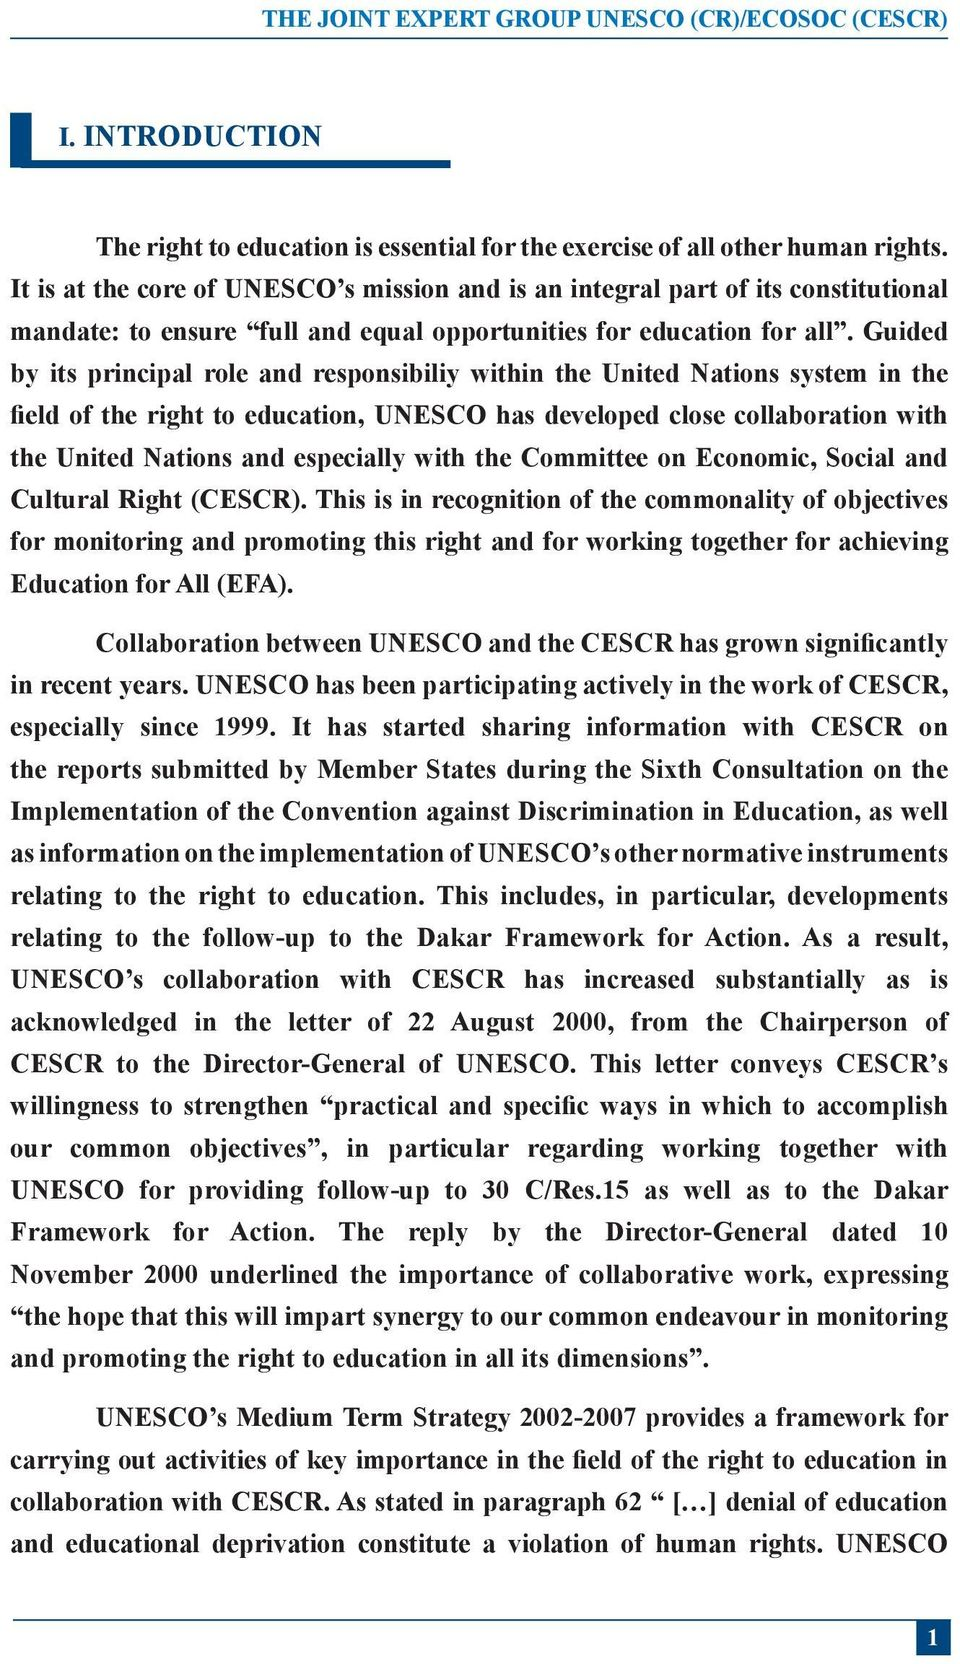 Guided by its principal role and responsibiliy within the United Nations system in the field of the right to education, UNESCO has developed close collaboration with the United Nations and especially